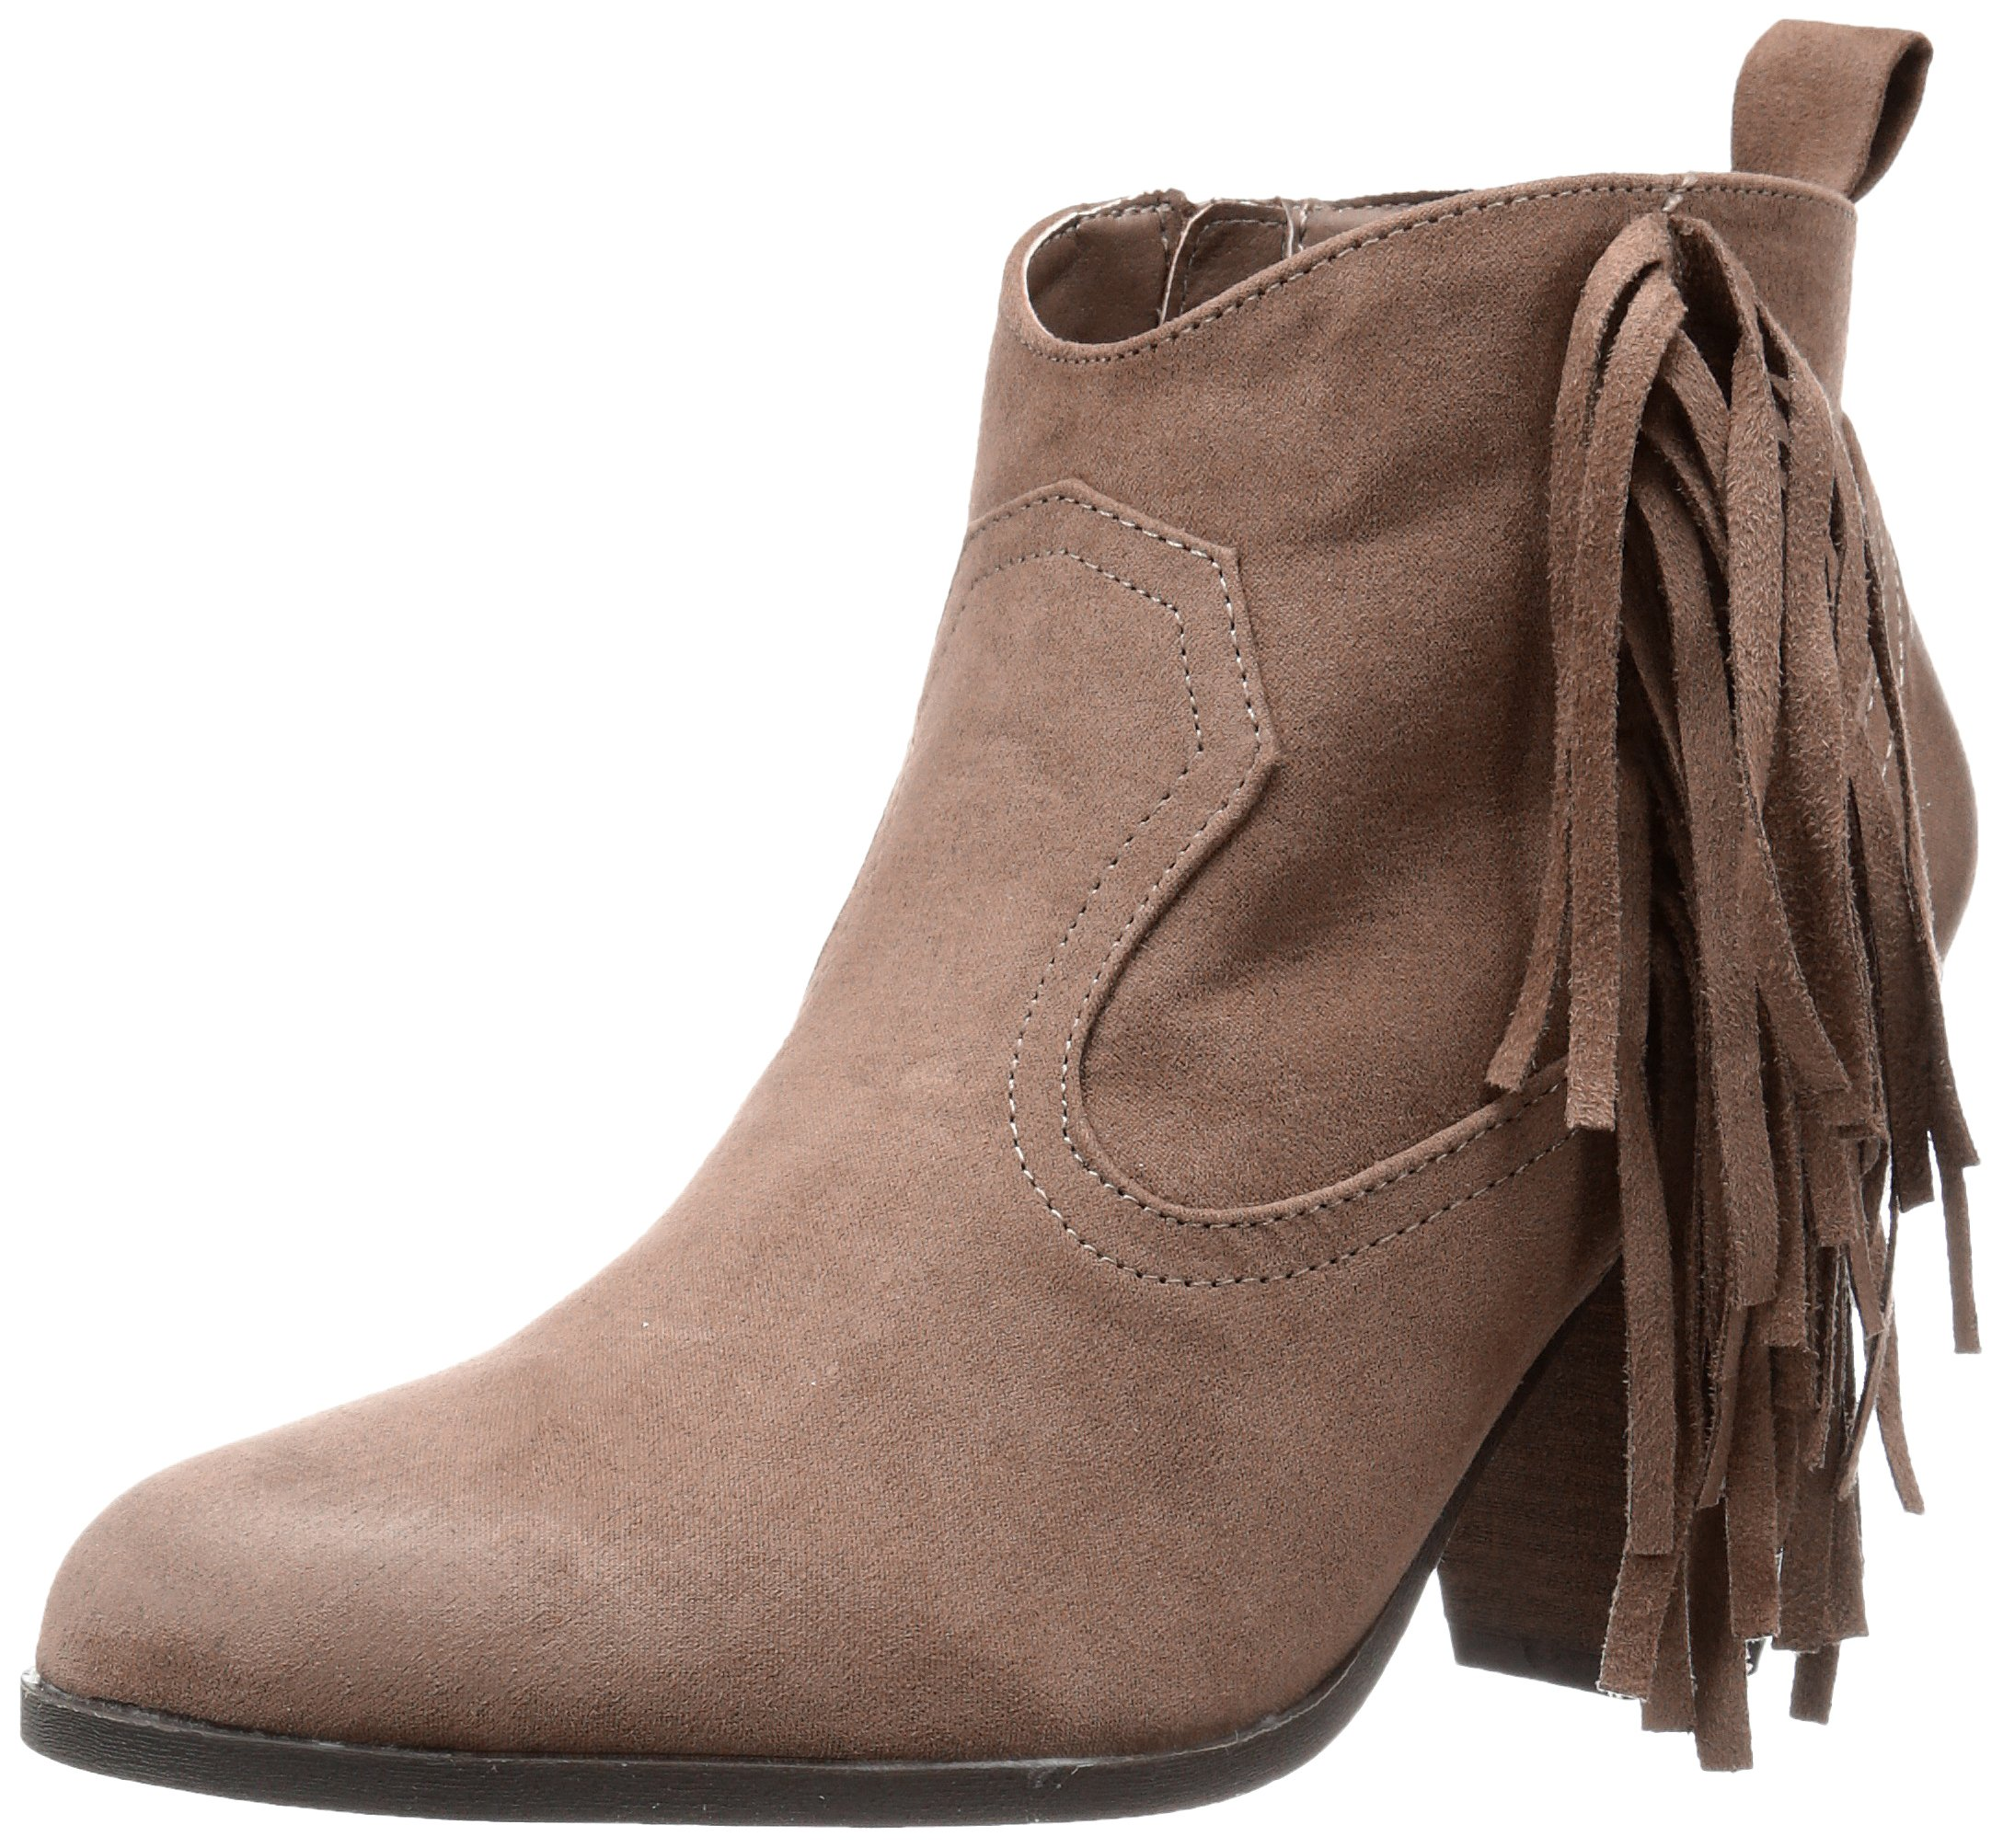 Qupid Women's Nixon-01 Ankle Bootie, Taupe, 6.5 M US